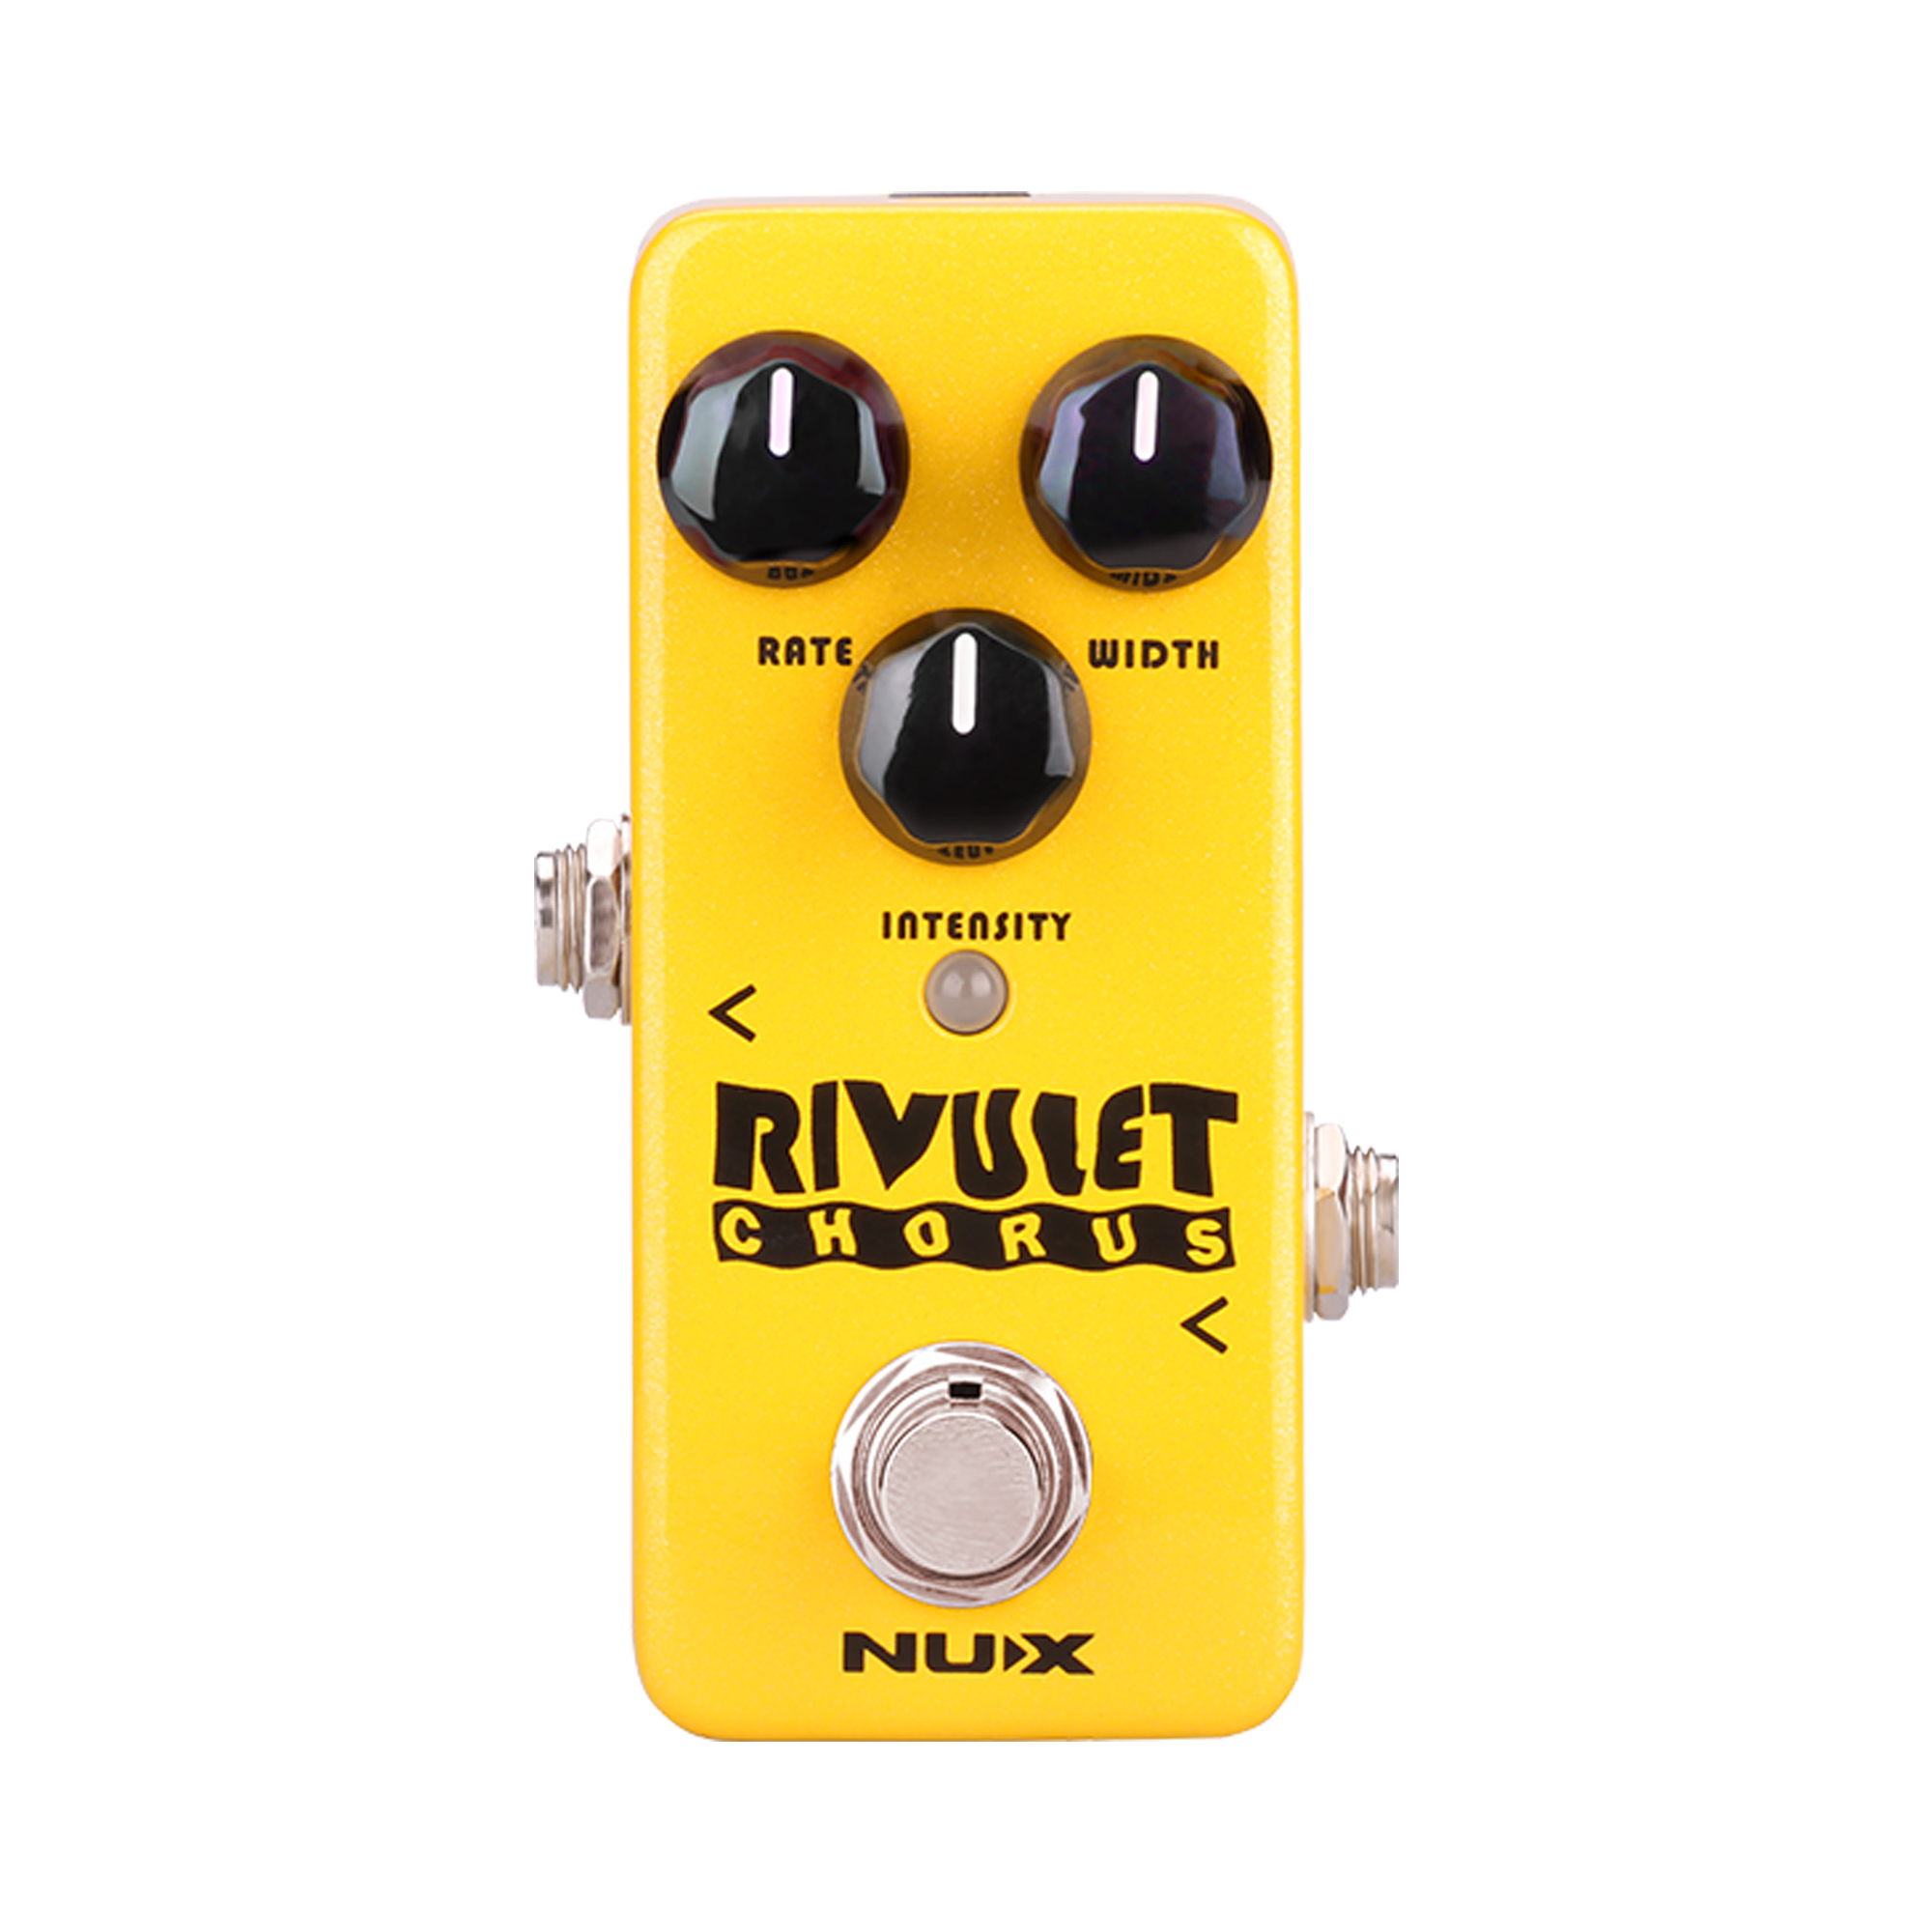 NUX Rivulet Chorus Guitar Effect Pedal Mini Core Series Stompbox DSP technology 3 Essential Choices Old-school Analog Chorus nux pmx 2 multi channel mini mixer 30